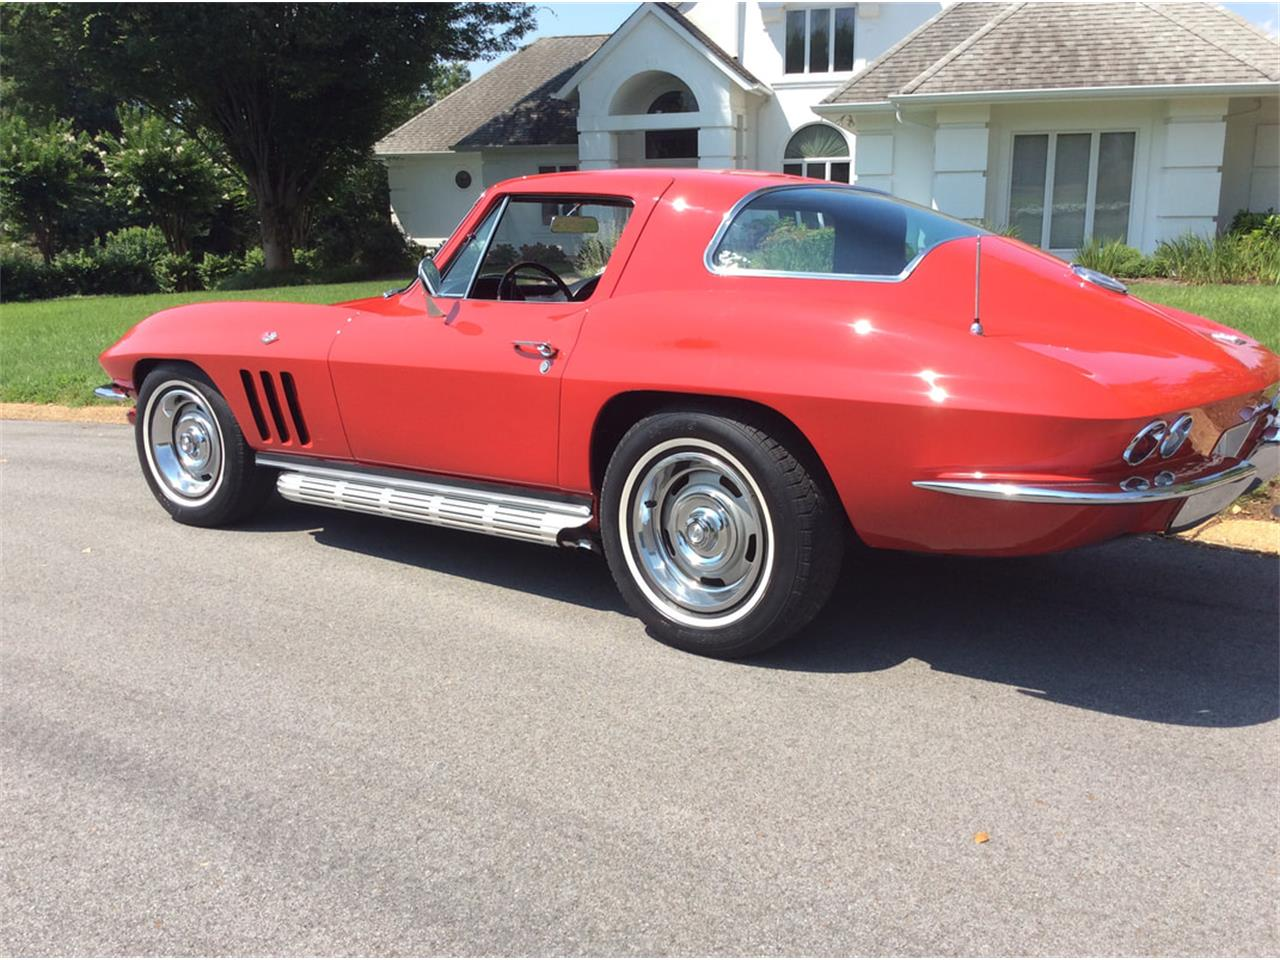 Large Picture of '66 Chevrolet Corvette located in Chattanooga Tennessee - $109,500.00 - MEJZ